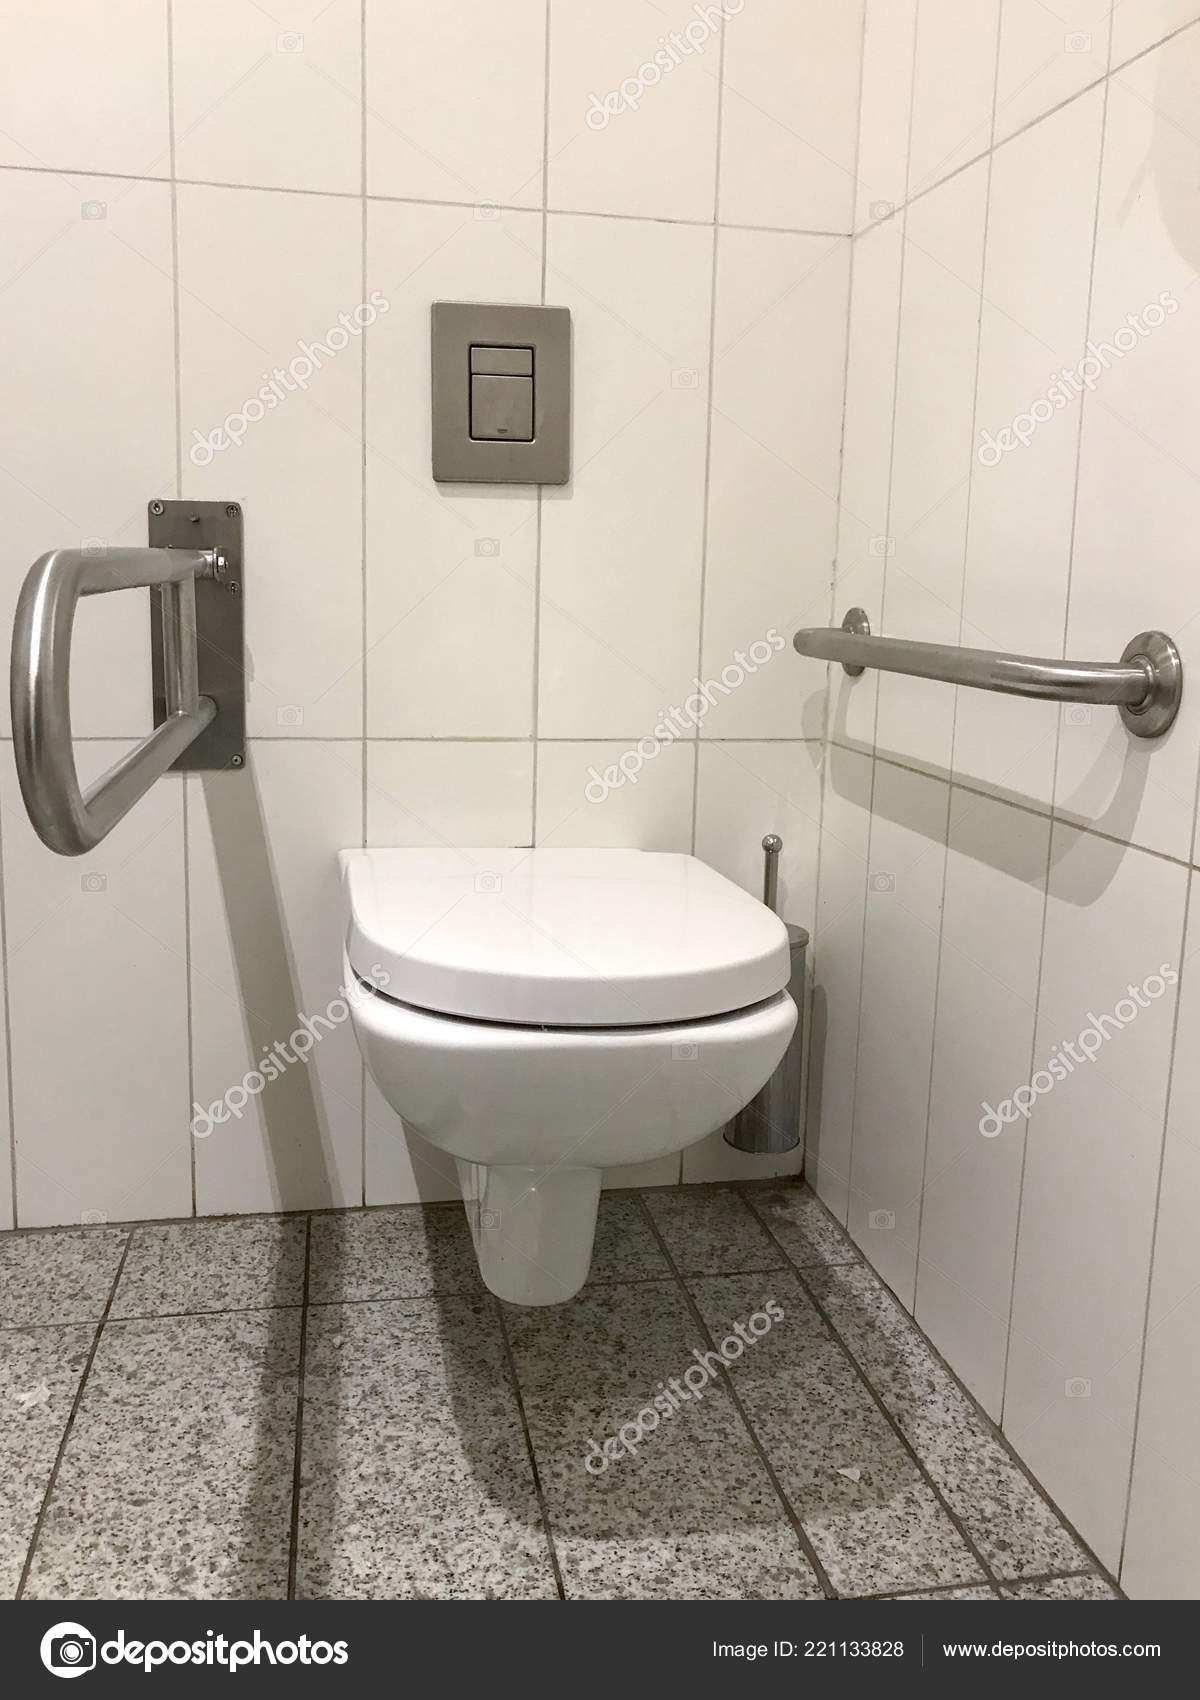 Handicapped Access Bathroom Grab Bars Toilet — Stock Photo